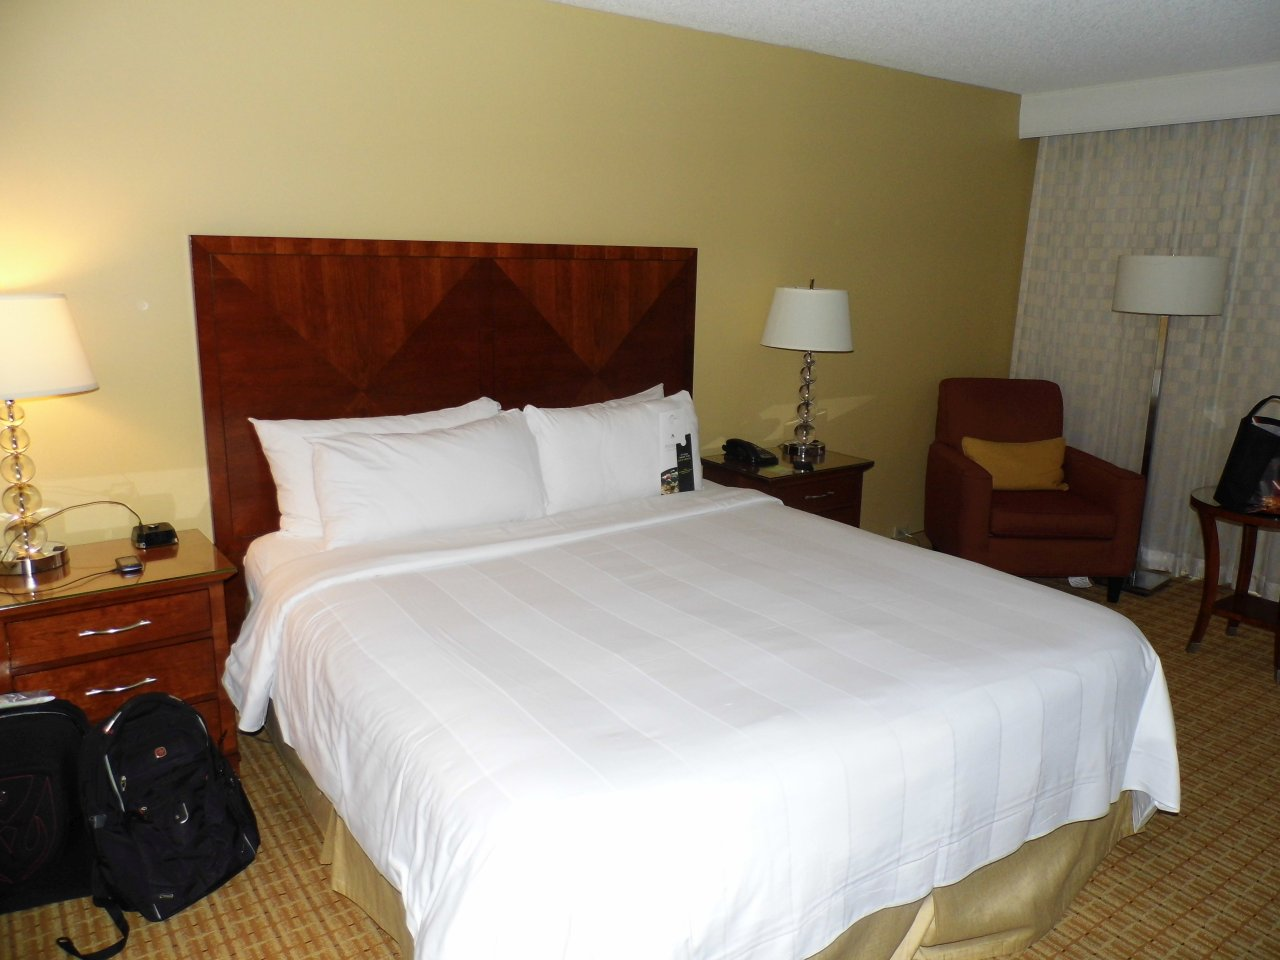 blog/cfd3-hotel-room.jpg